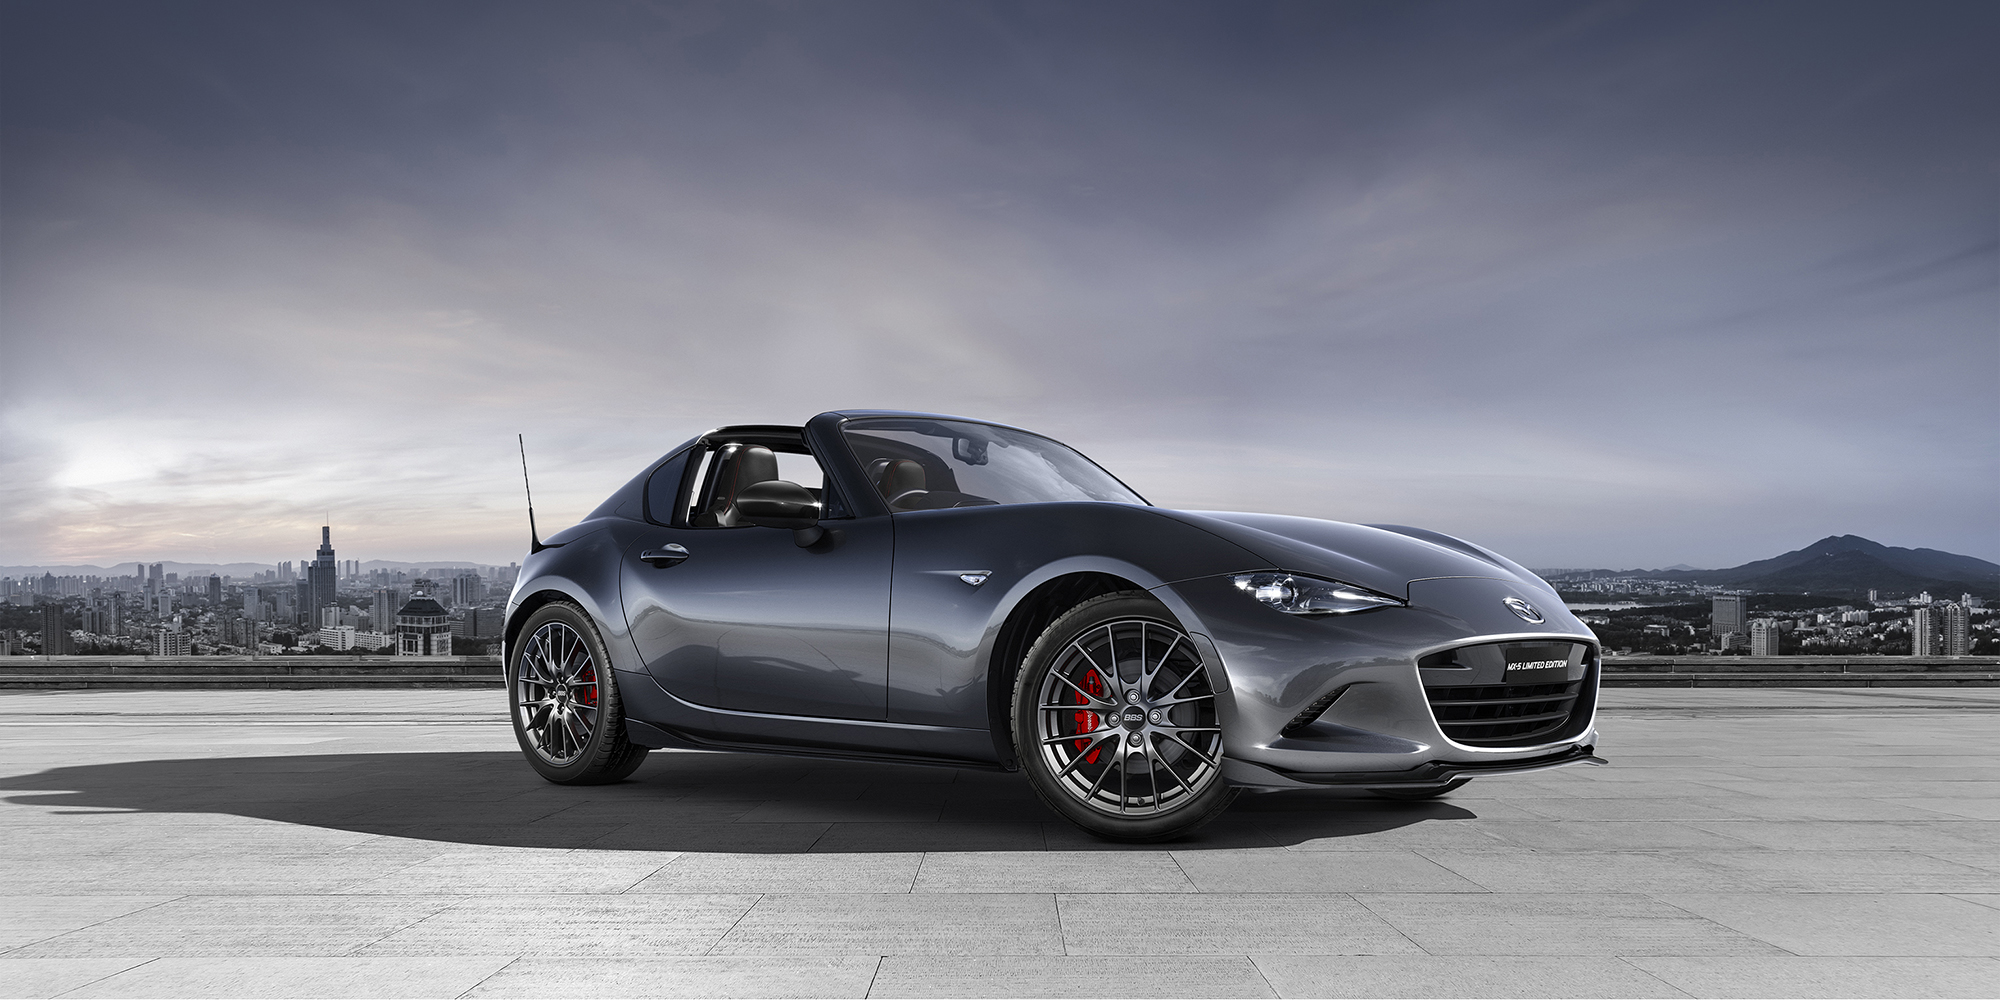 Mazda Mx 5 Rf Price >> Mazda MX-5 RF Limited Edition detailed - Photos (1 of 7)